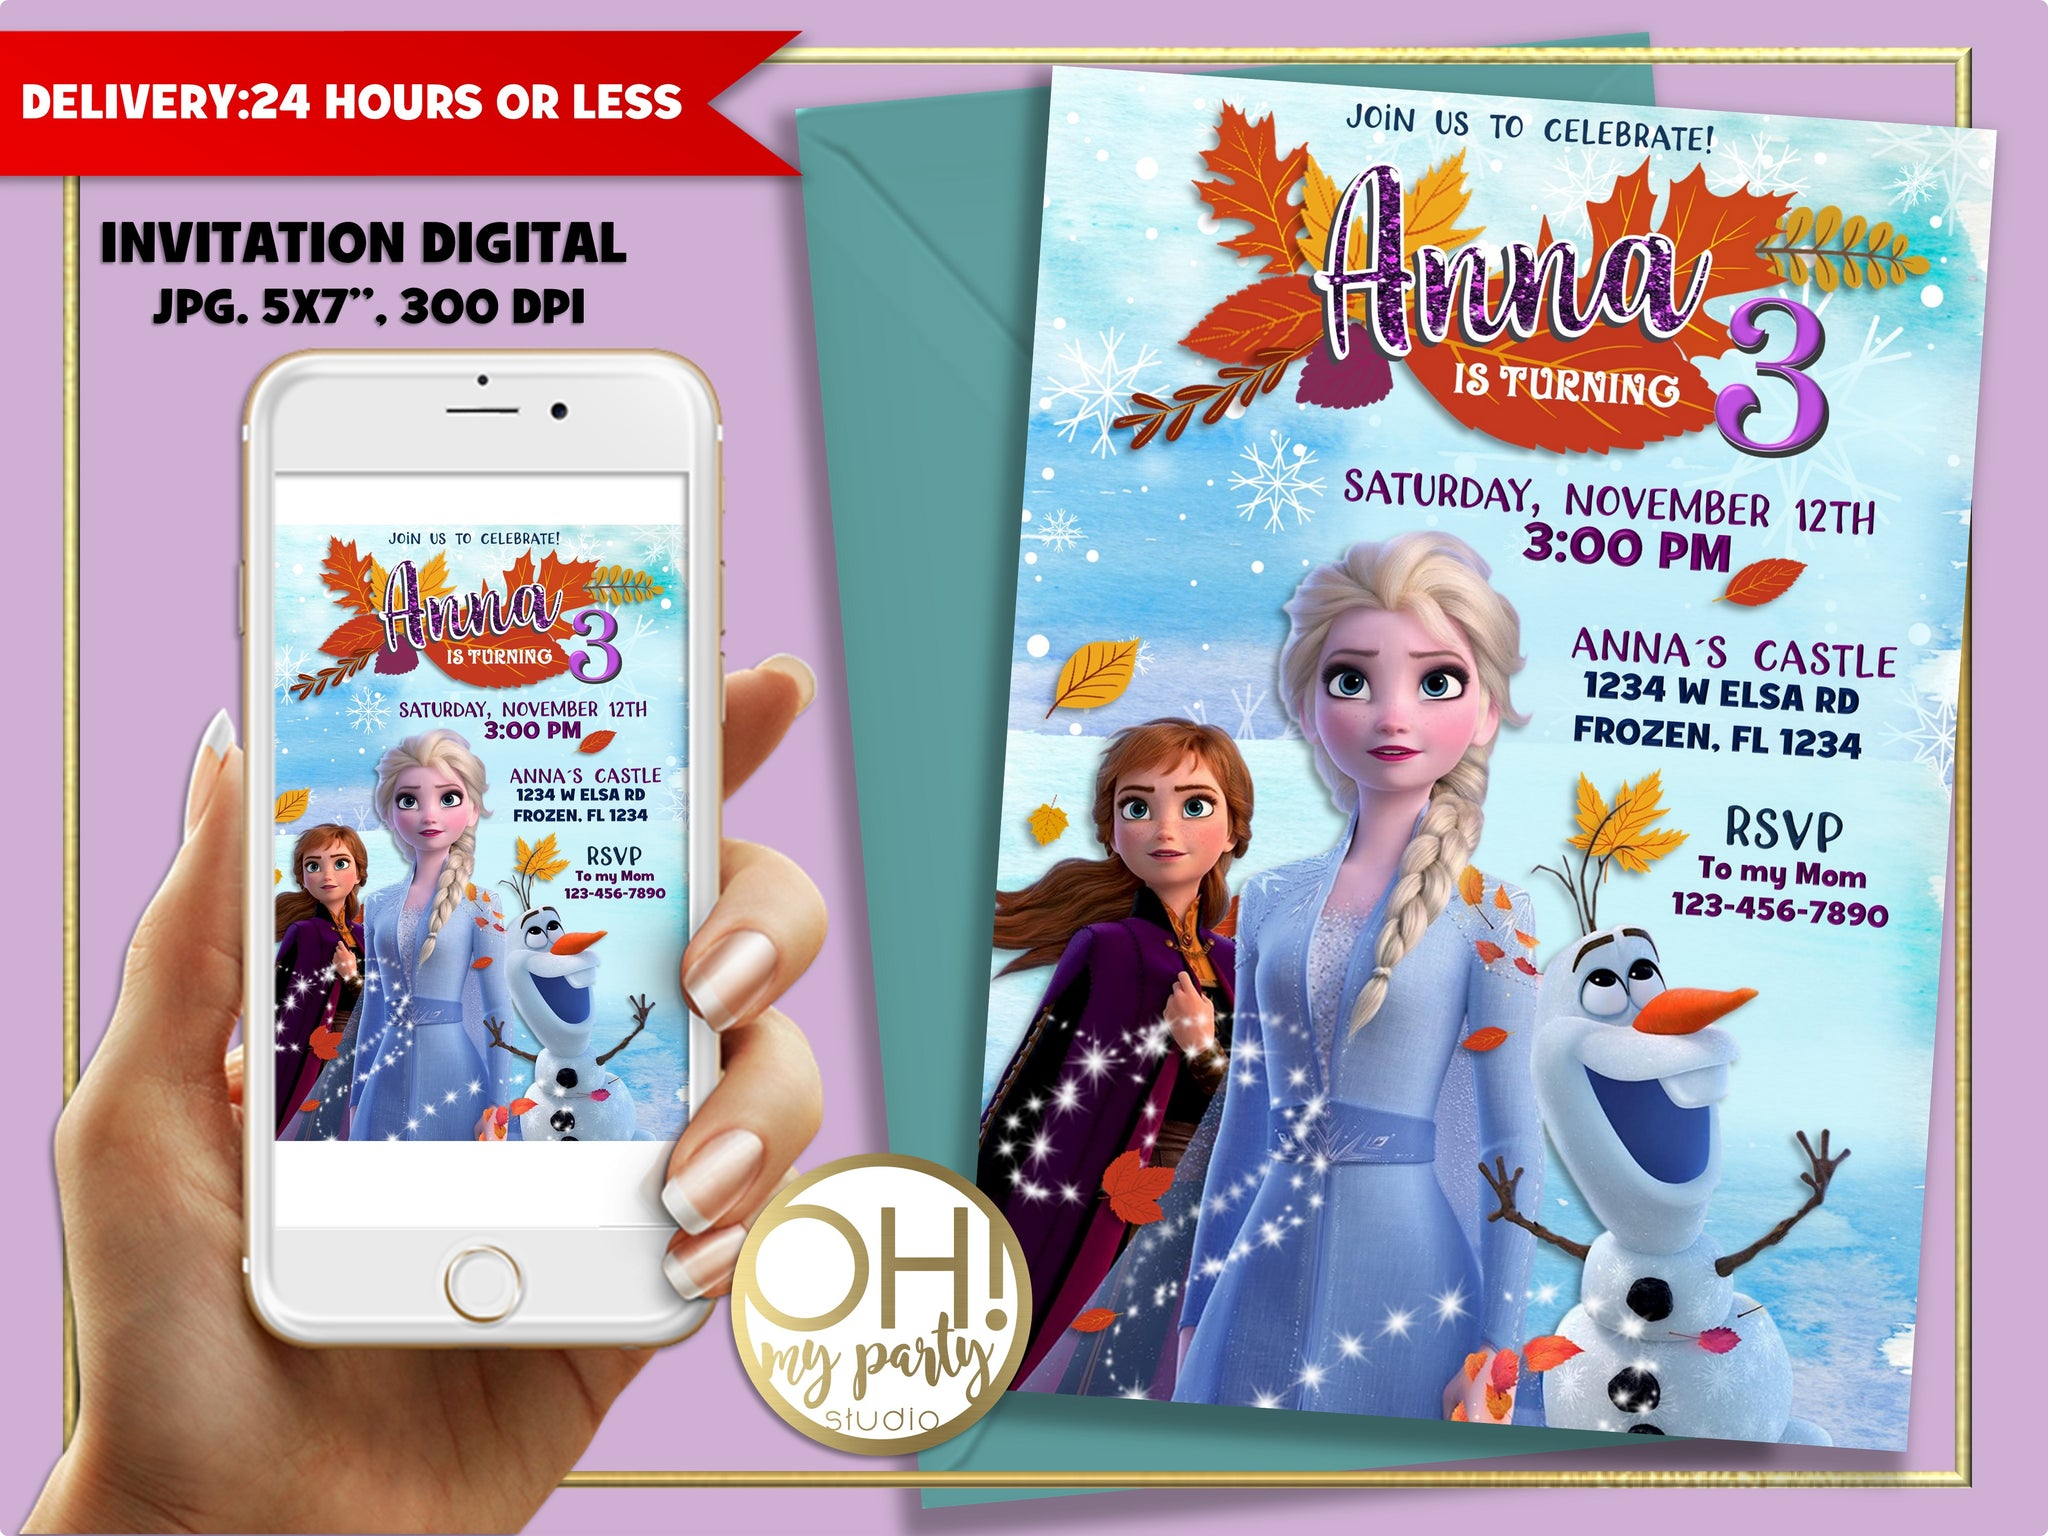 FROZEN 2 BIRTHDAY PARTY, FROZEN 2 INVITATION, FROZEN 2 INVITATIONS, FROZEN 2 BIRTHDAY, FROZEN 2 PARTY, FROZEN 2 PARTY INVITATION, FROZEN 2 PARTY IDEAS, FROZEN 2 PARTY DECORATION, FORZEN 2 INVITE, FROZEN 2 CARD, FROZEN 2 DIGITAL INVITATION, FROZEN 2 INVITATION DIGITAL, FROZEN 2 INVITACIÓN, FROZEN 2 INVITACIÓN DIGITAL , frozen 2 party ideas, frozen 2 digital invitation, frozen 2 party